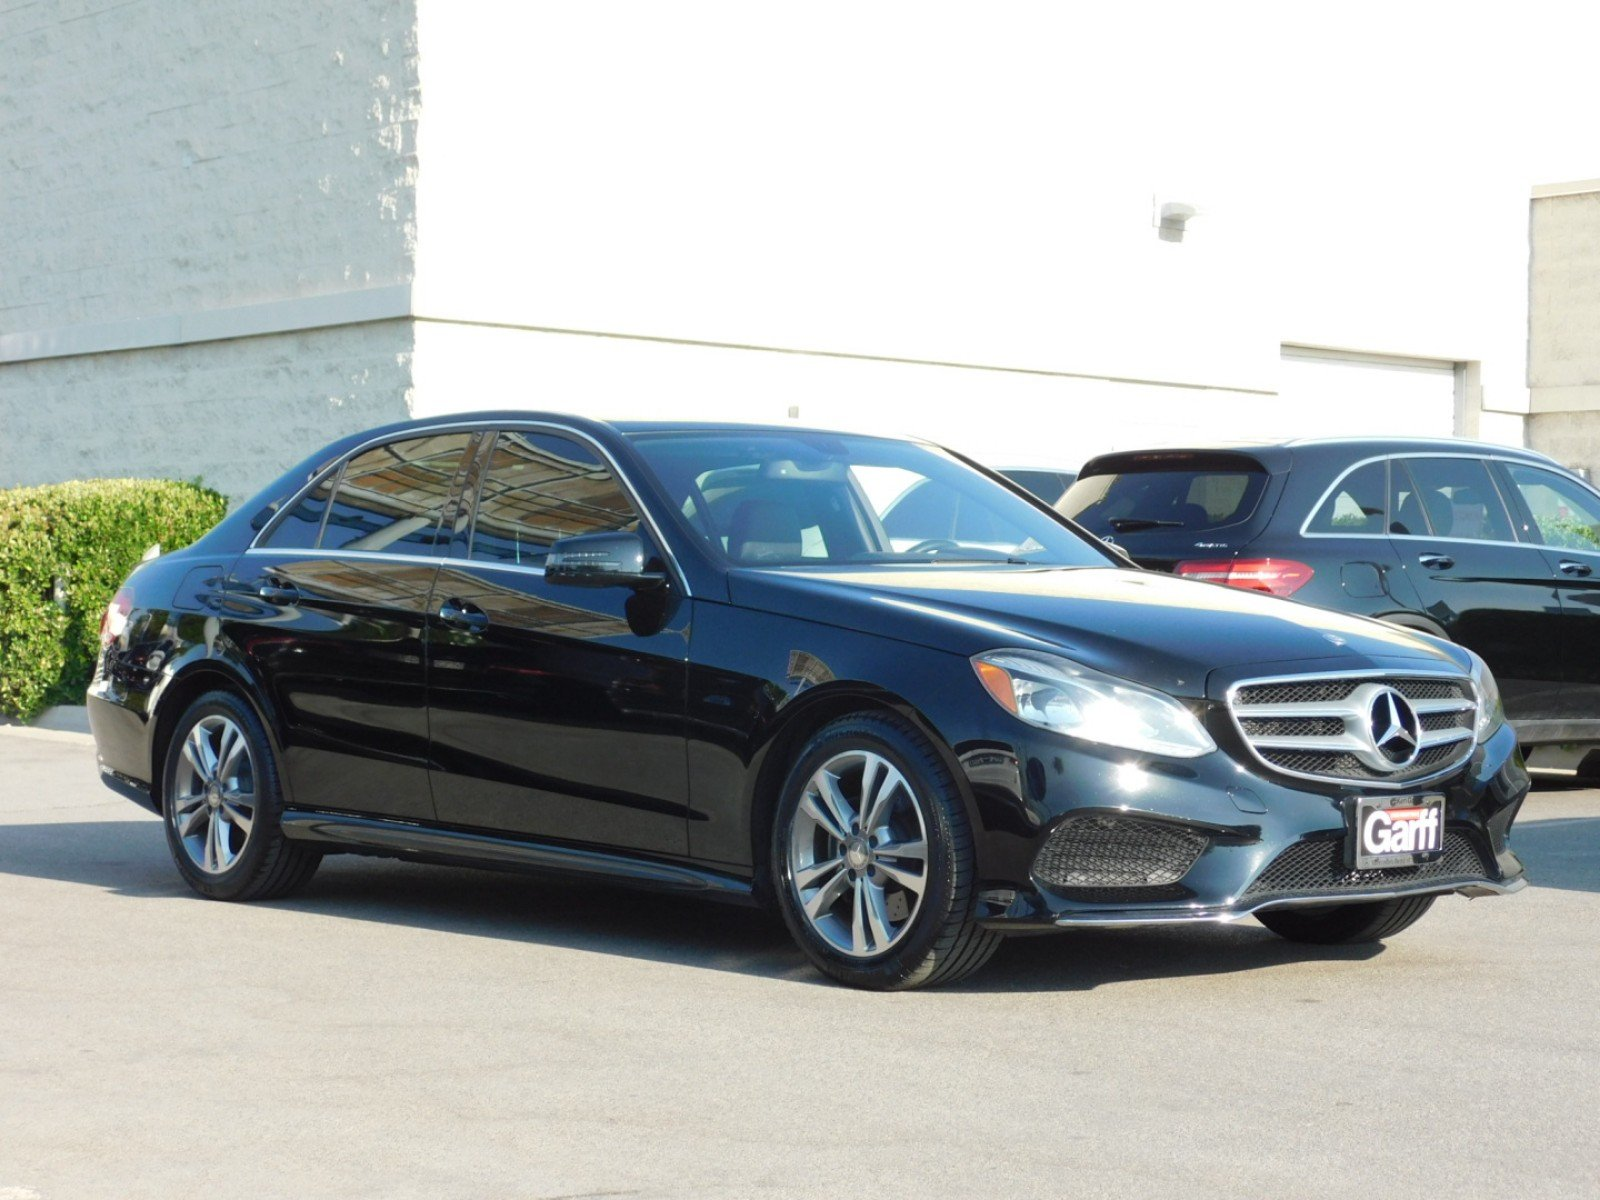 Certified Pre Owned 2016 Mercedes Benz E Class 4DR SDN E 350 SPORT